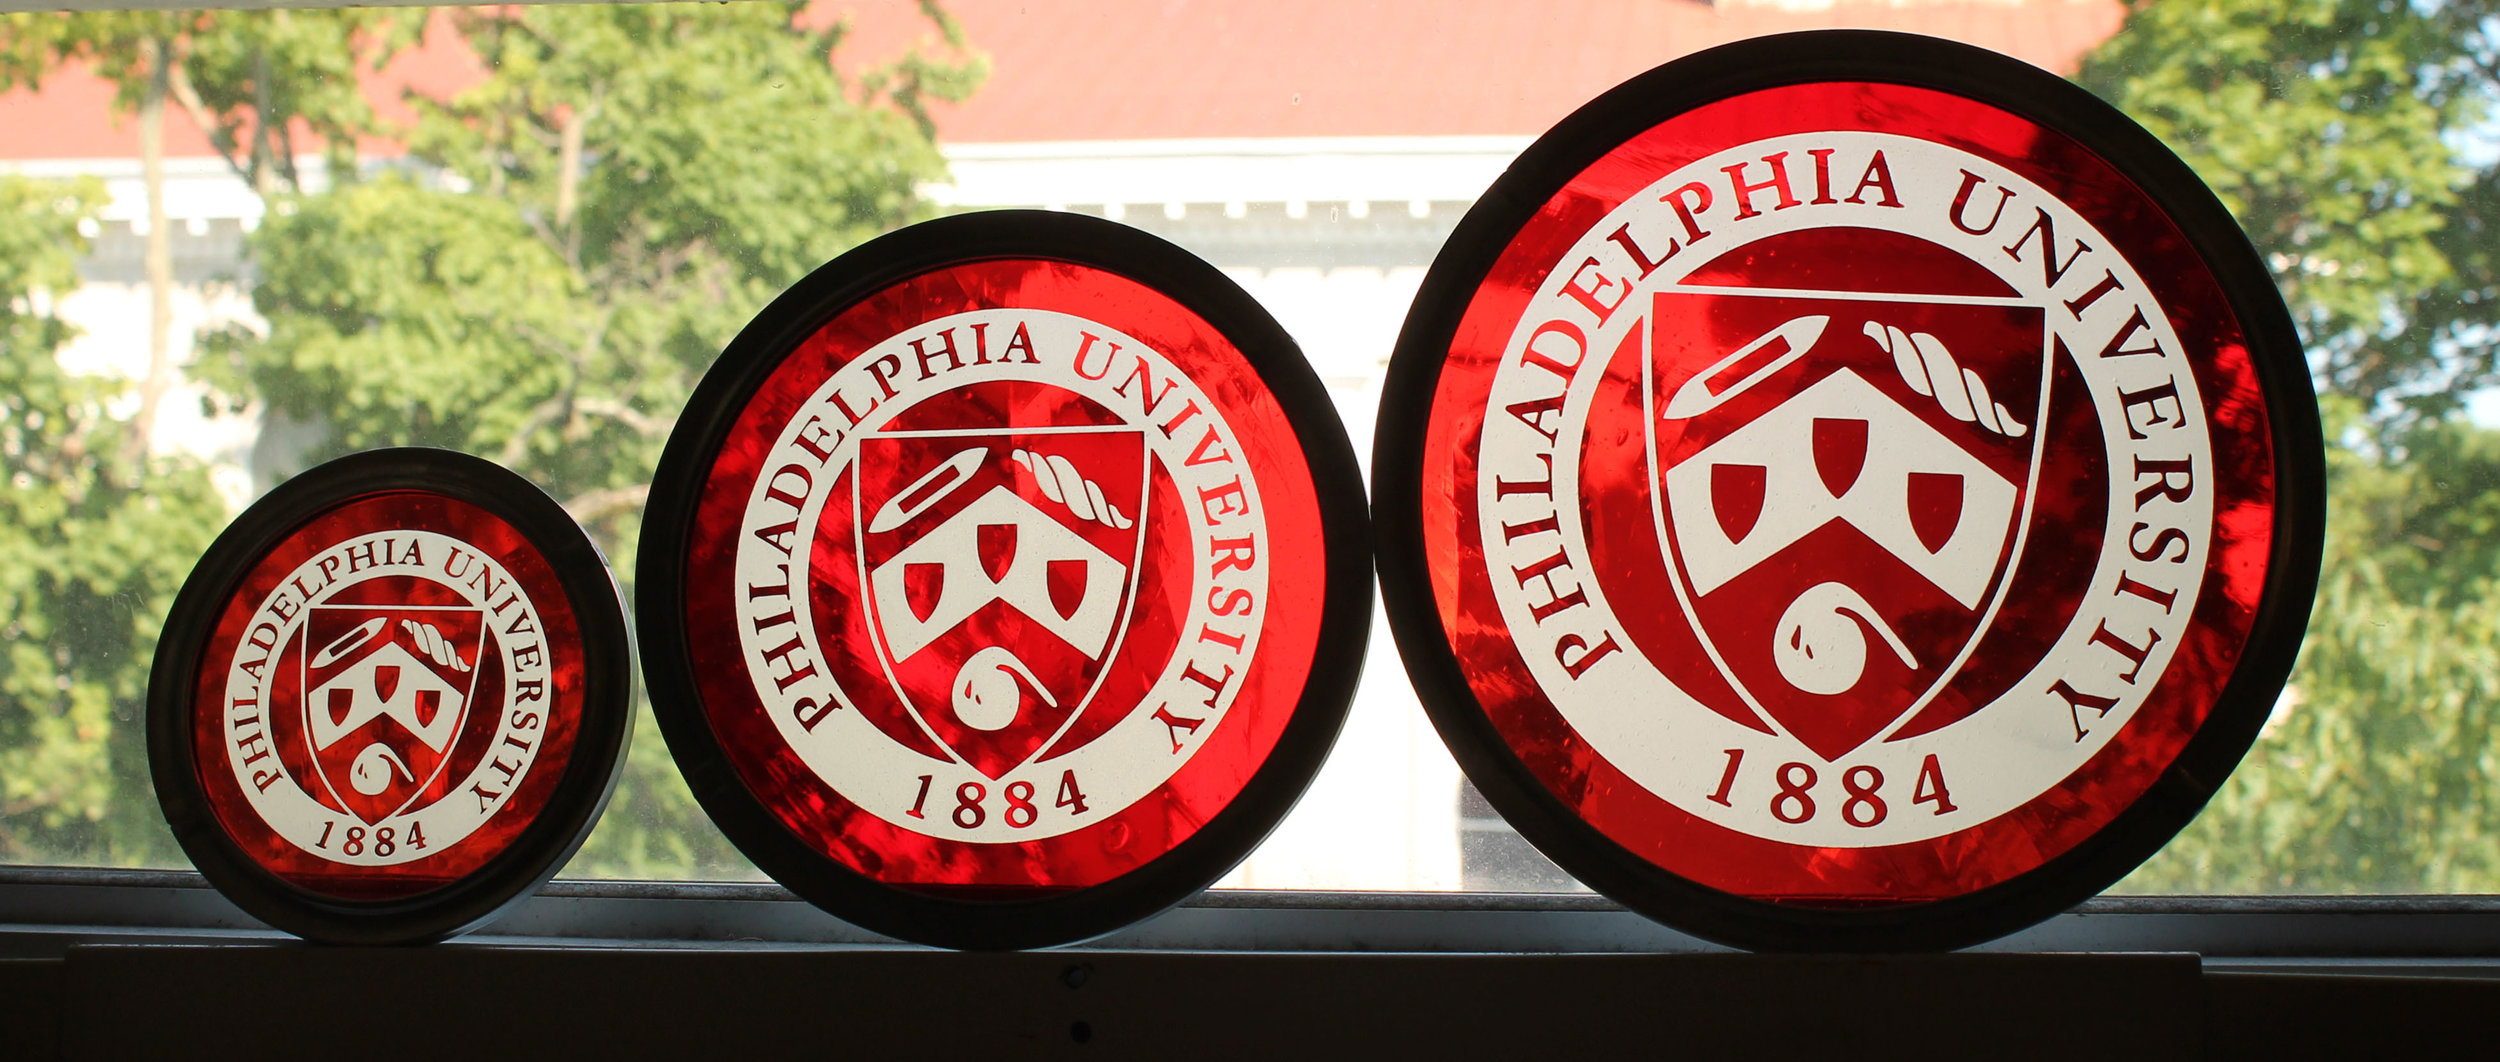 Custom College Crest Philadelphia University